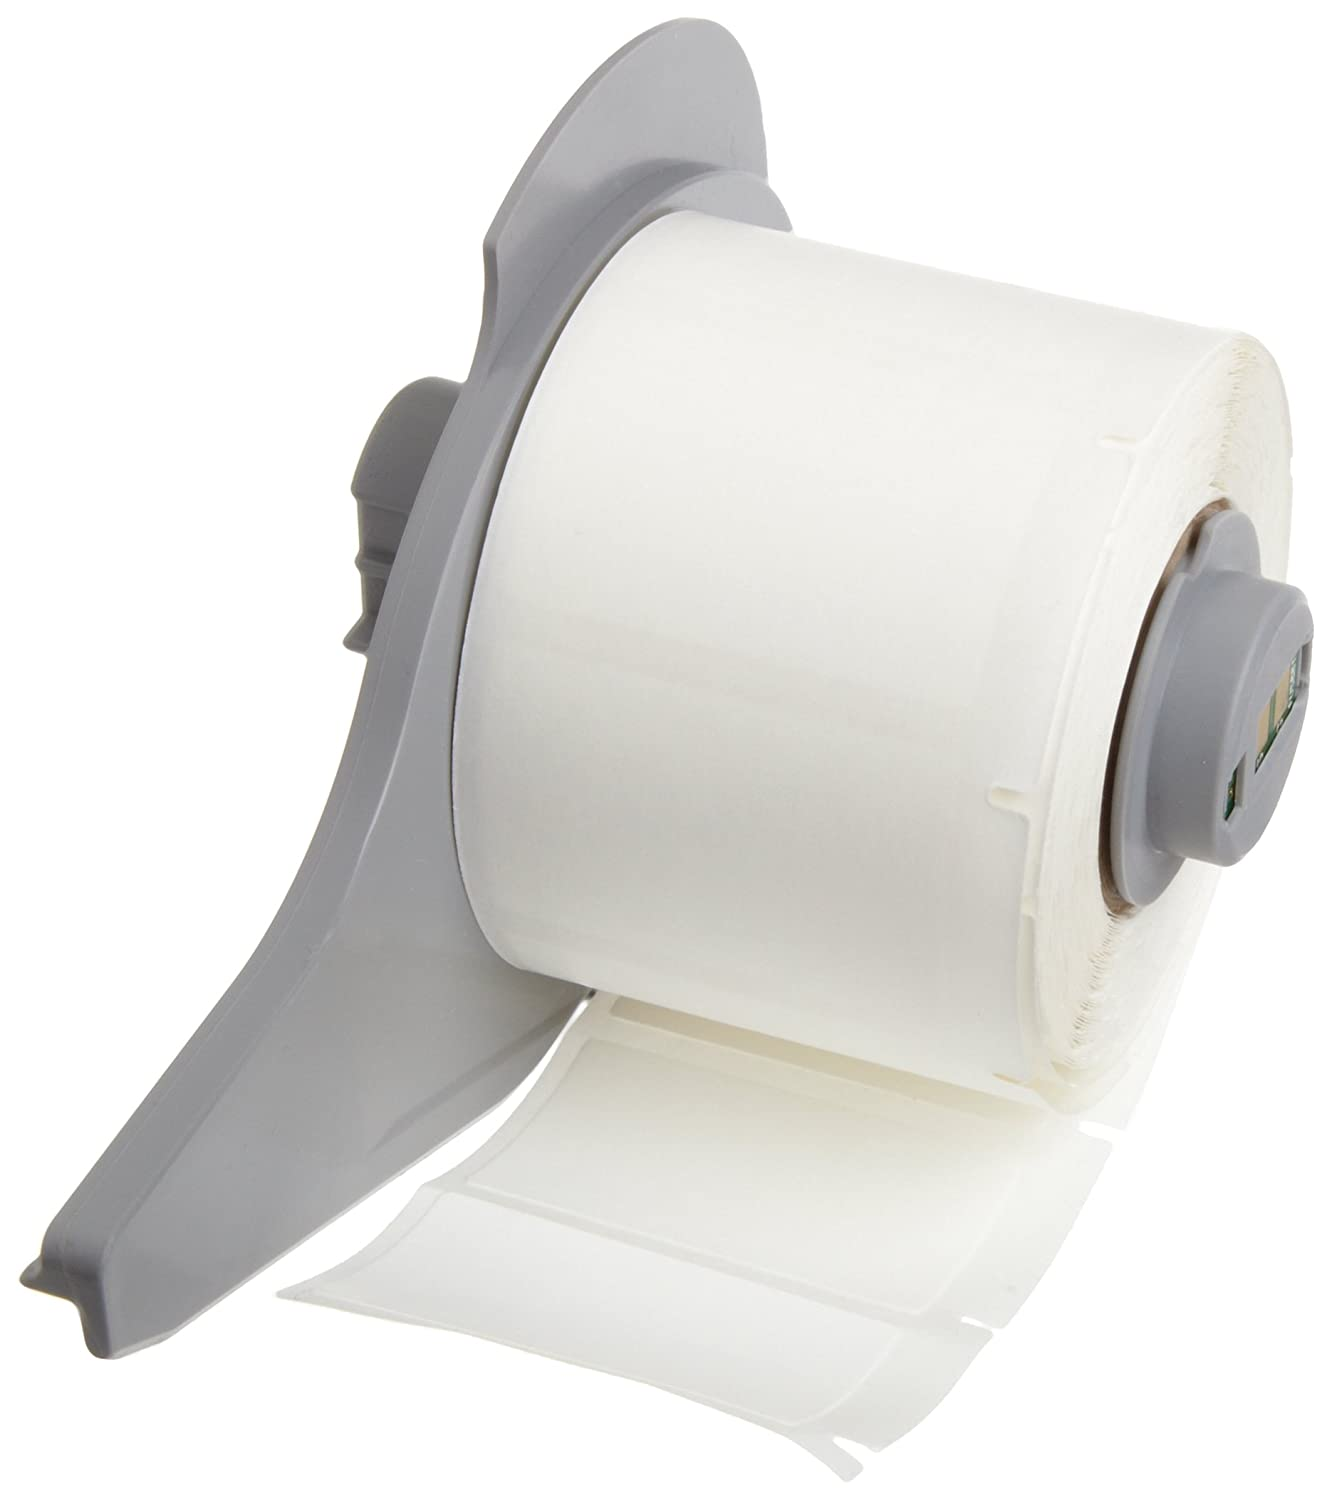 Brady M71C-240-498 0.24 Width x 30 Height White Color B-498 Repositionable Vinyl Cloth Label With Semi-Gloss Finish For BMP71 Label Printer Brady Corp